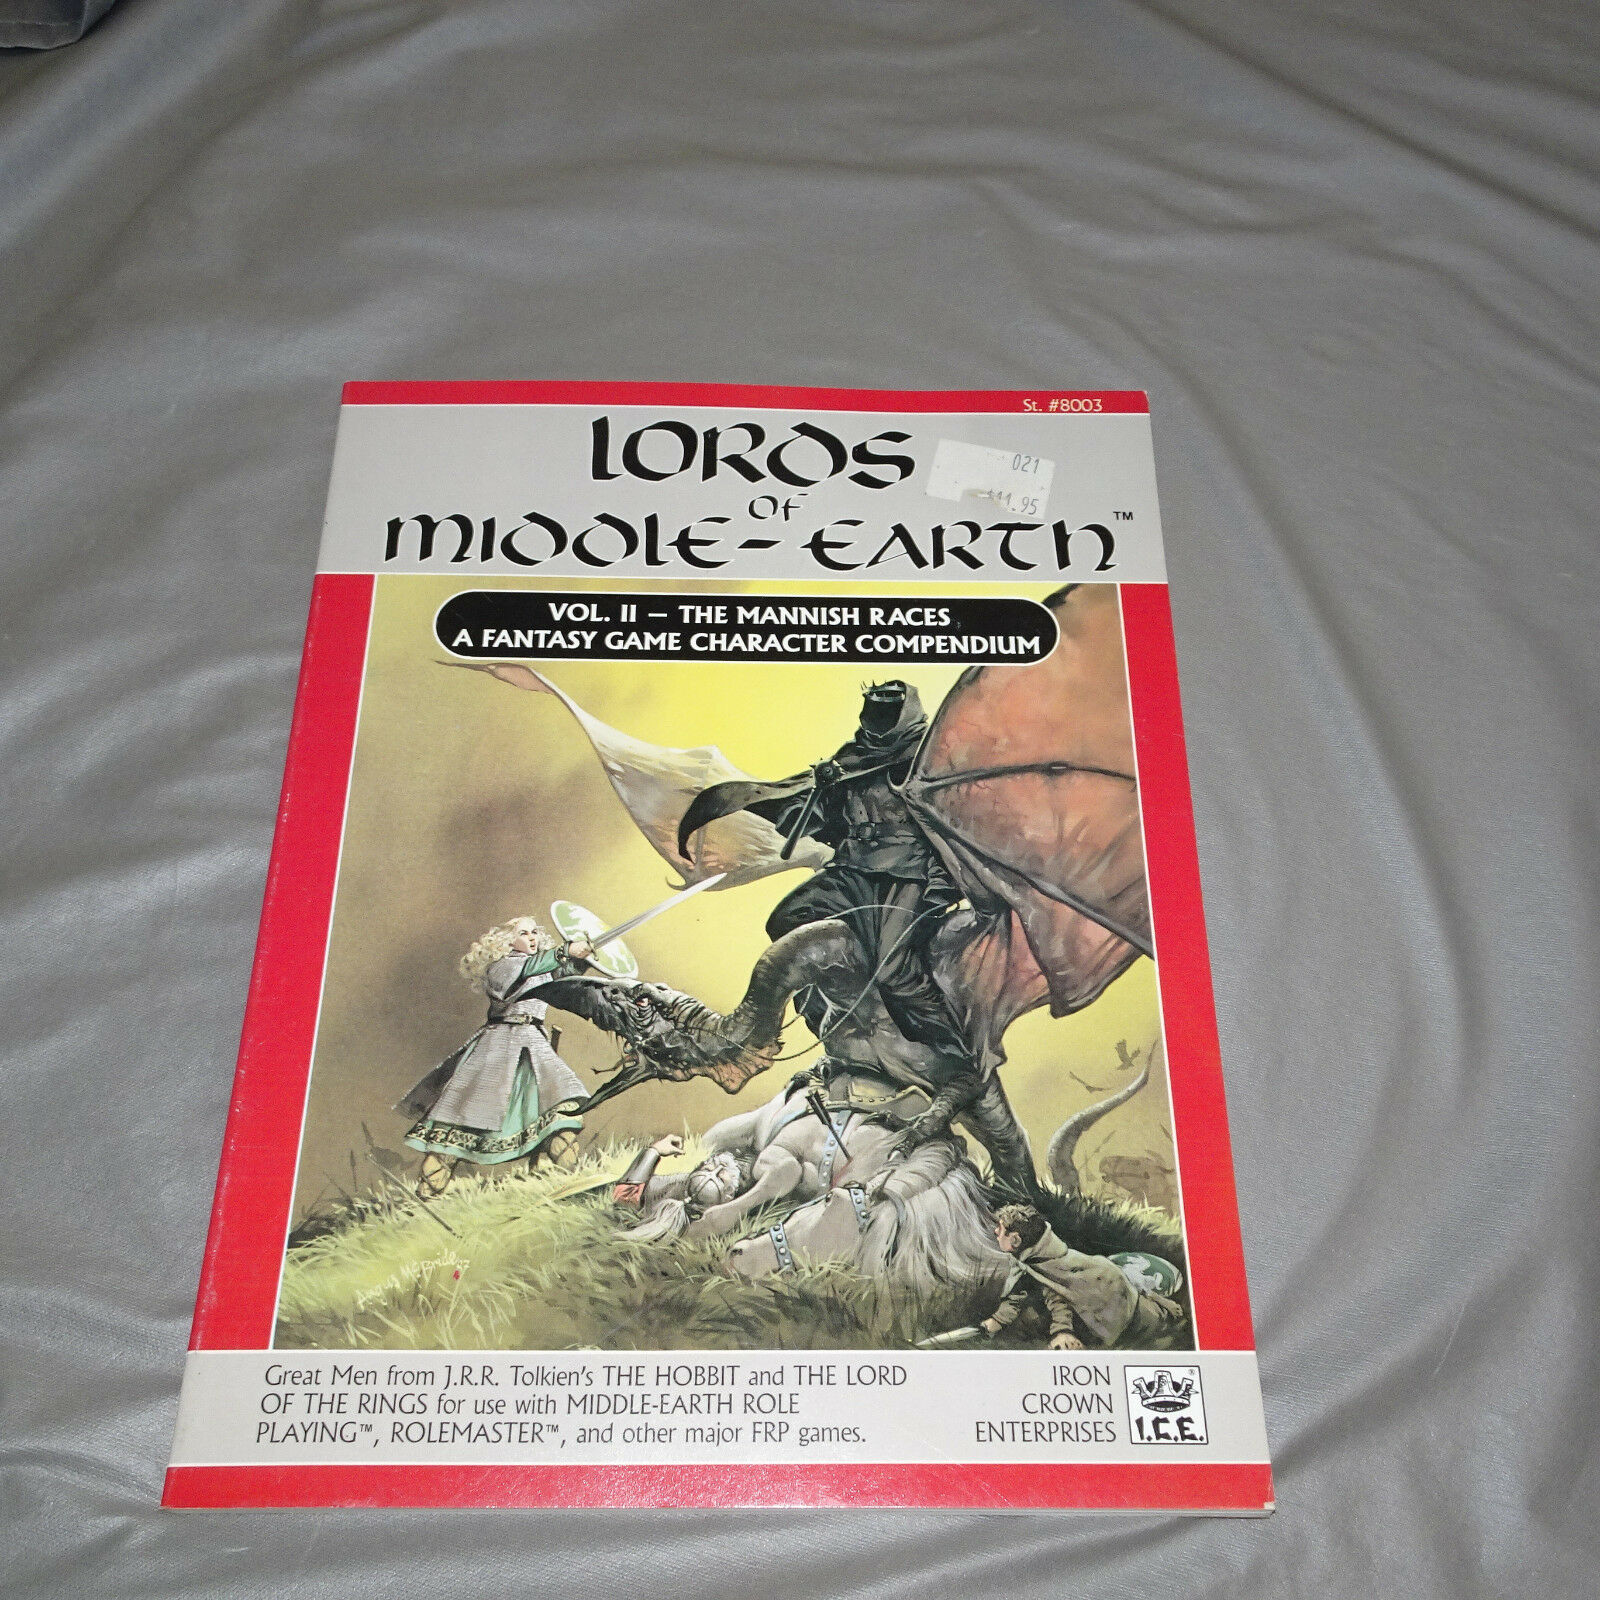 LORDS OF MIDDLE-EARTH VOL II THE MANNISH RACES  8003  I.C.E. - 1987